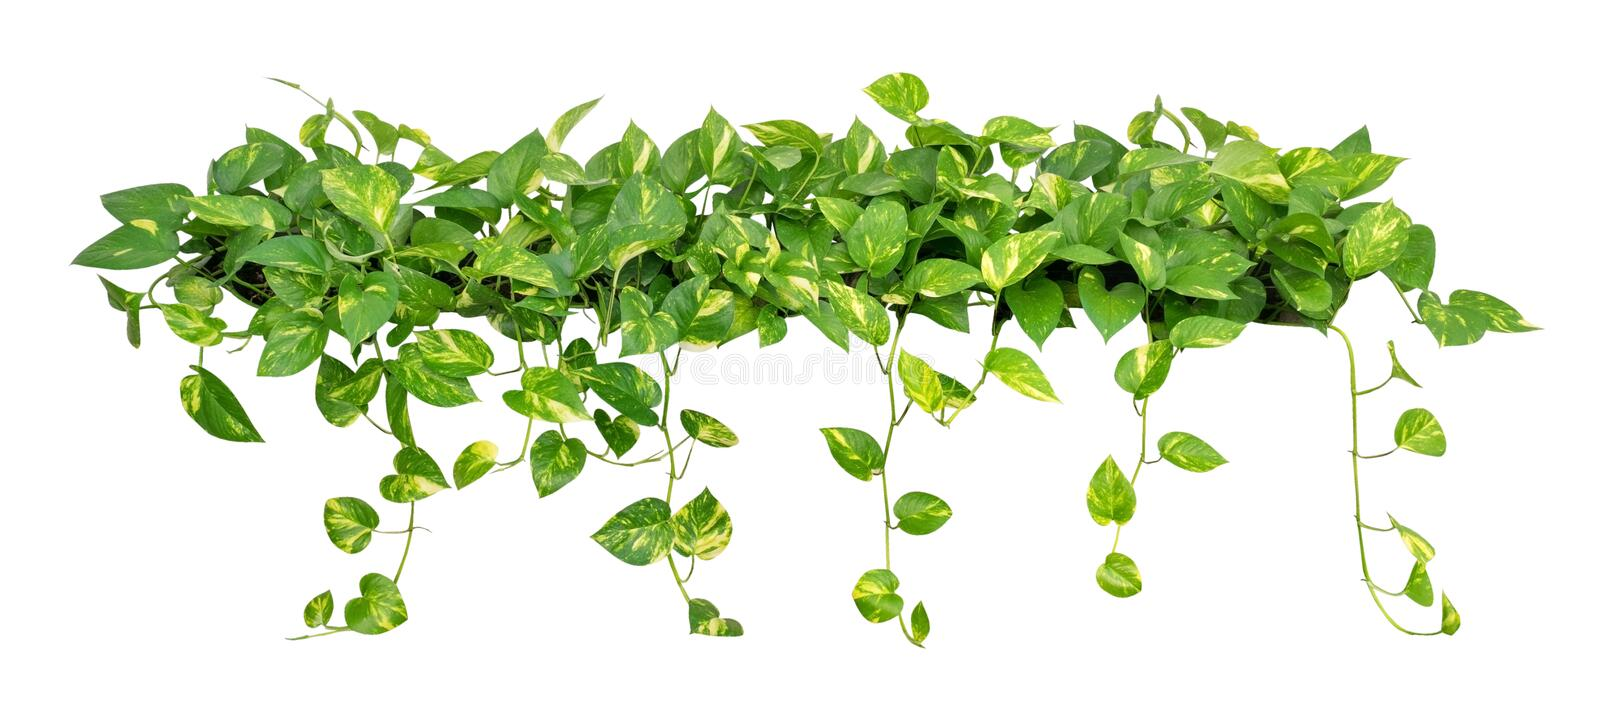 Heart shaped leaves vine golden pothos isolated on white background download heart shaped leaves vine golden pothos isolated on white background path stock photo mightylinksfo